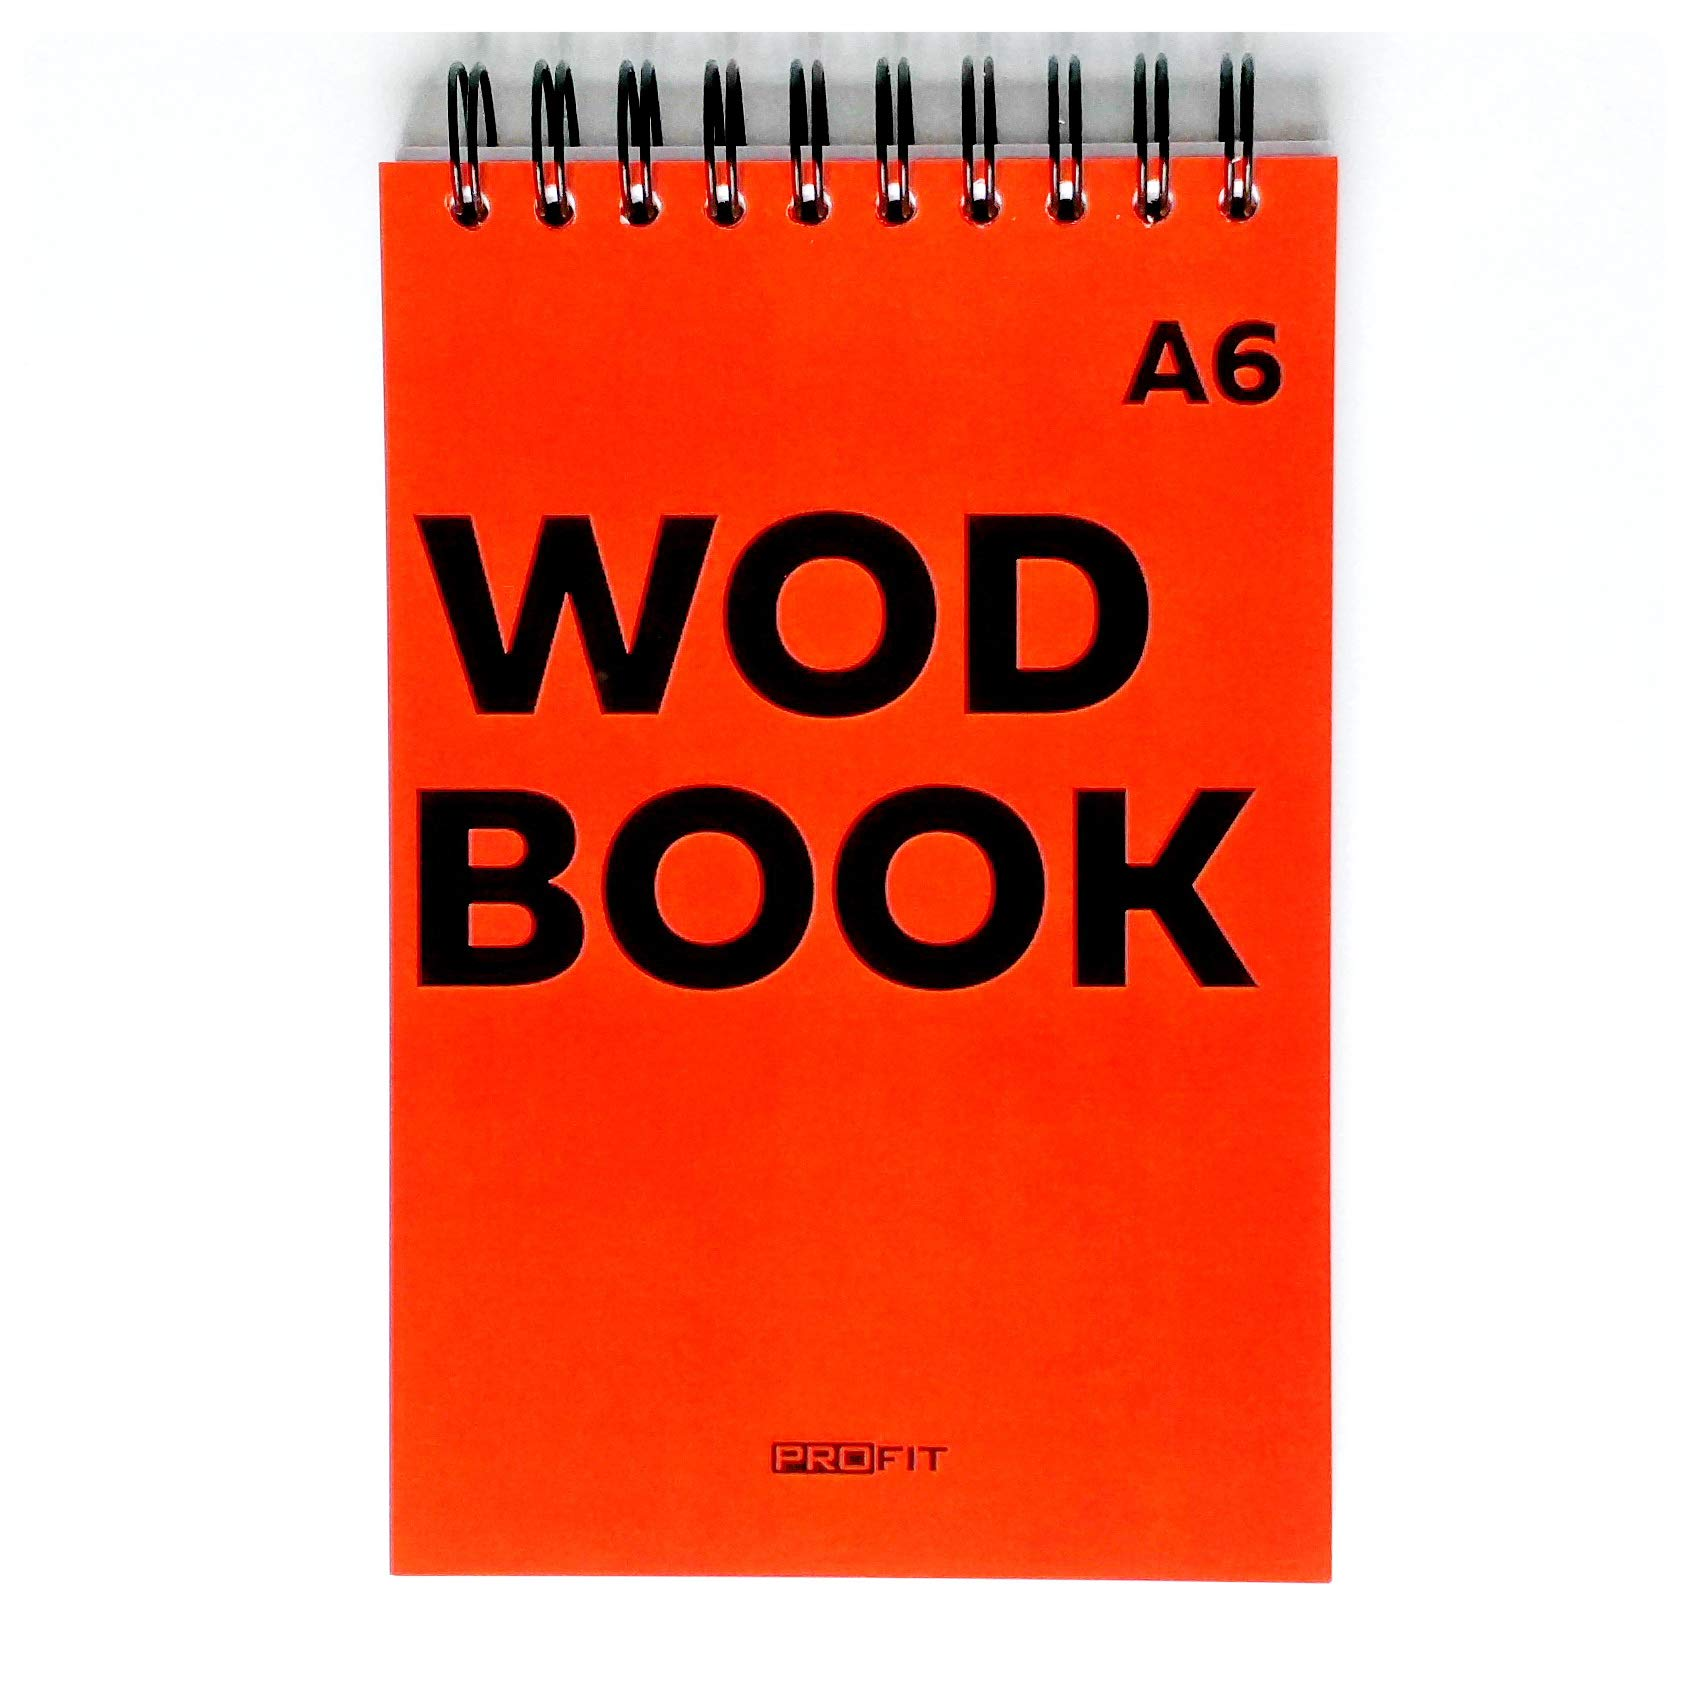 WODBOOK A6 Crossfit Training Journal by Profit - WOD Logbook - Cross Training Tracking Diary – WOD Book | 140 Pages - Track 125 WODs | Designed to Track Your Strength, Conditioning and Skills